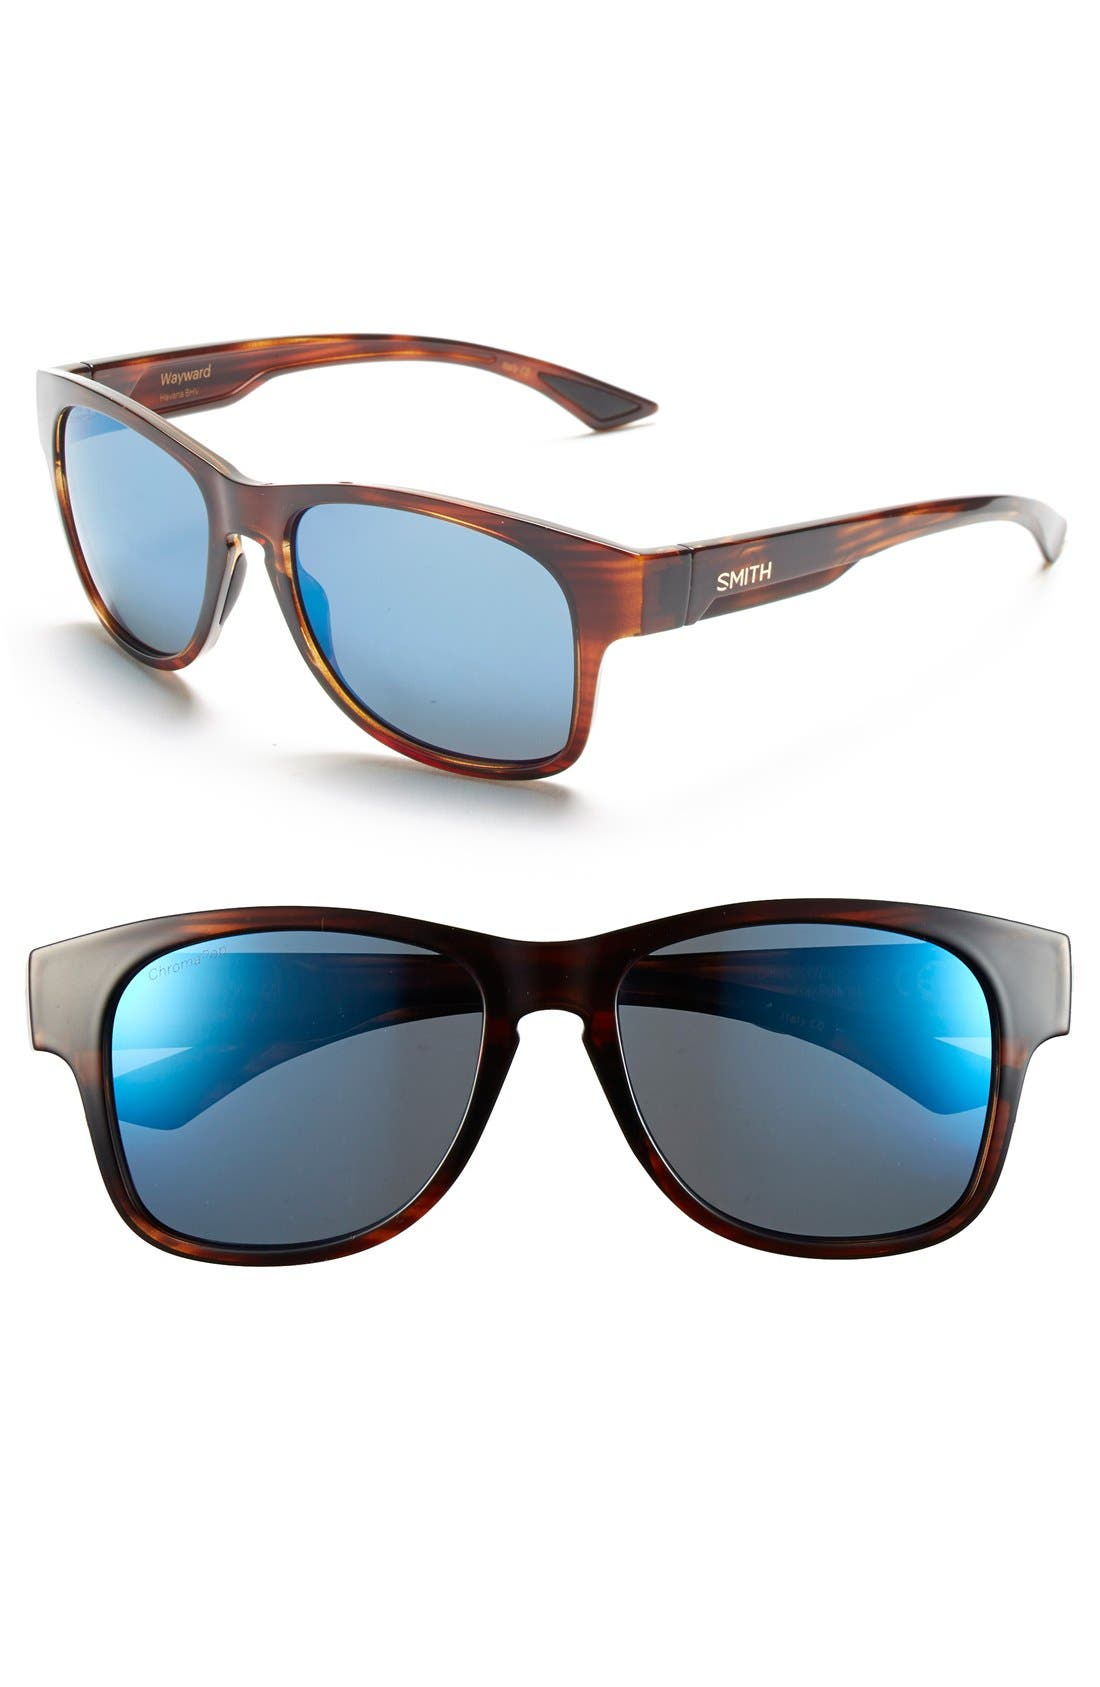 SMITH Wayward 54mm Polarized Sunglasses